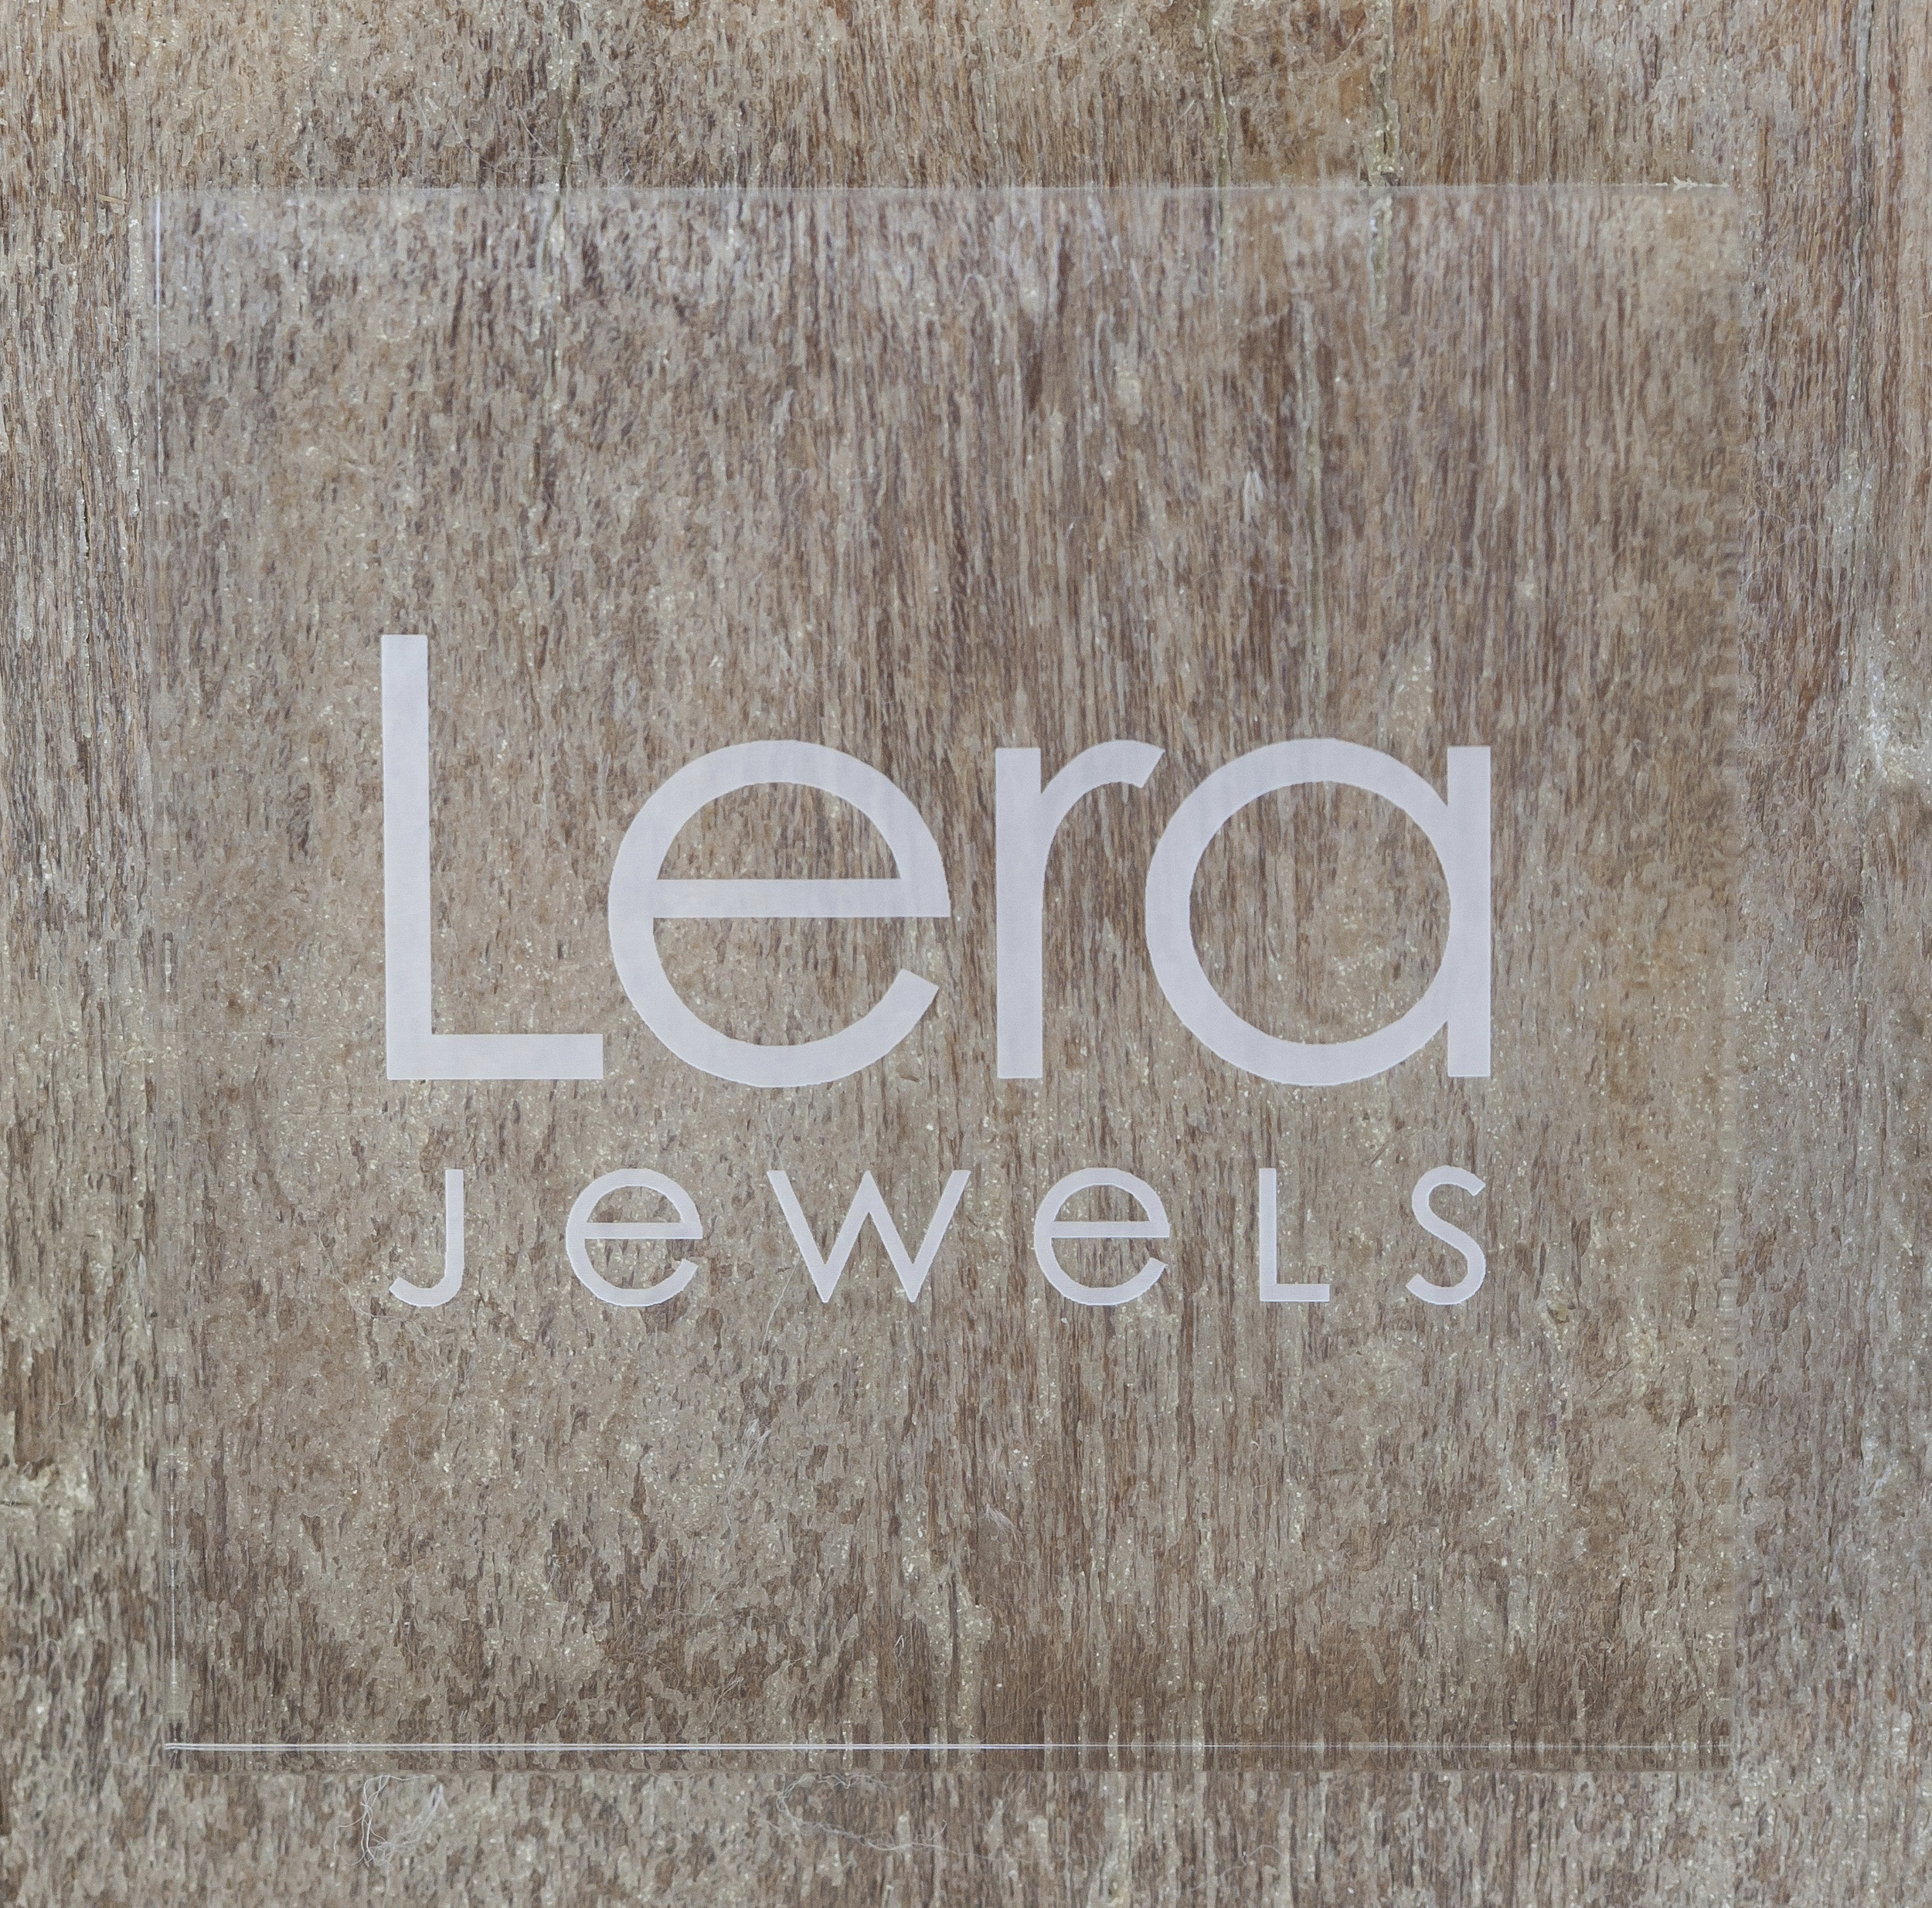 Lera sign on wood.jpg